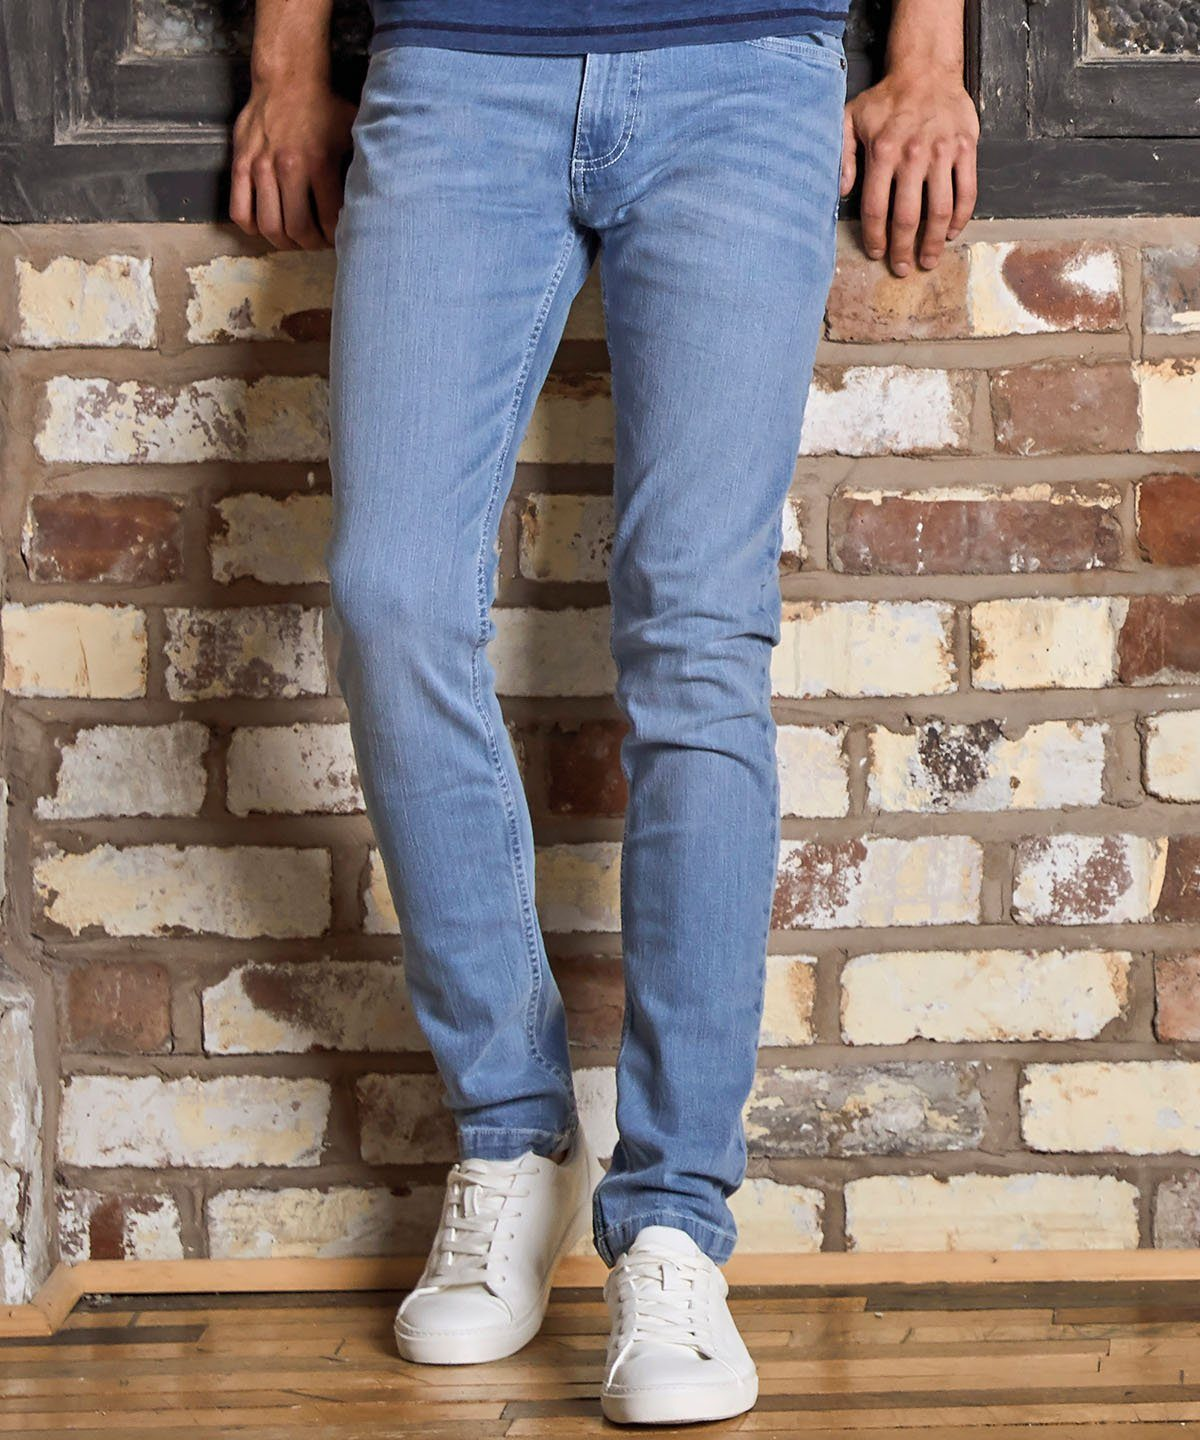 Men's Stretch Slim Jeans Primate Fashion